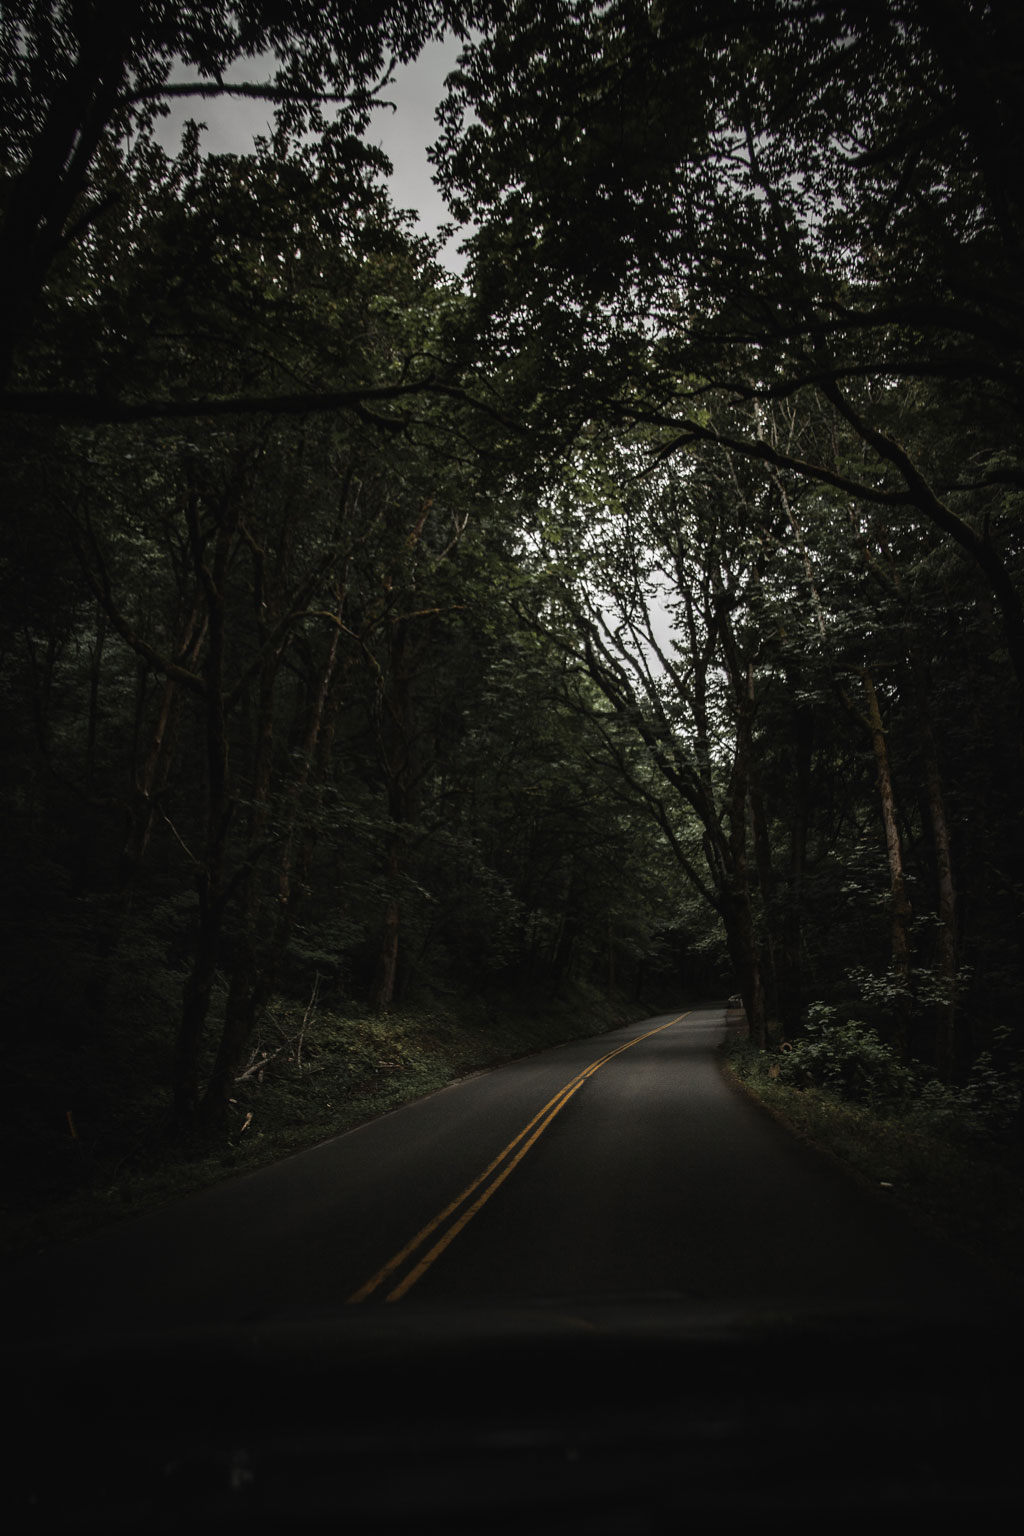 a lonely road at dusk or dawn